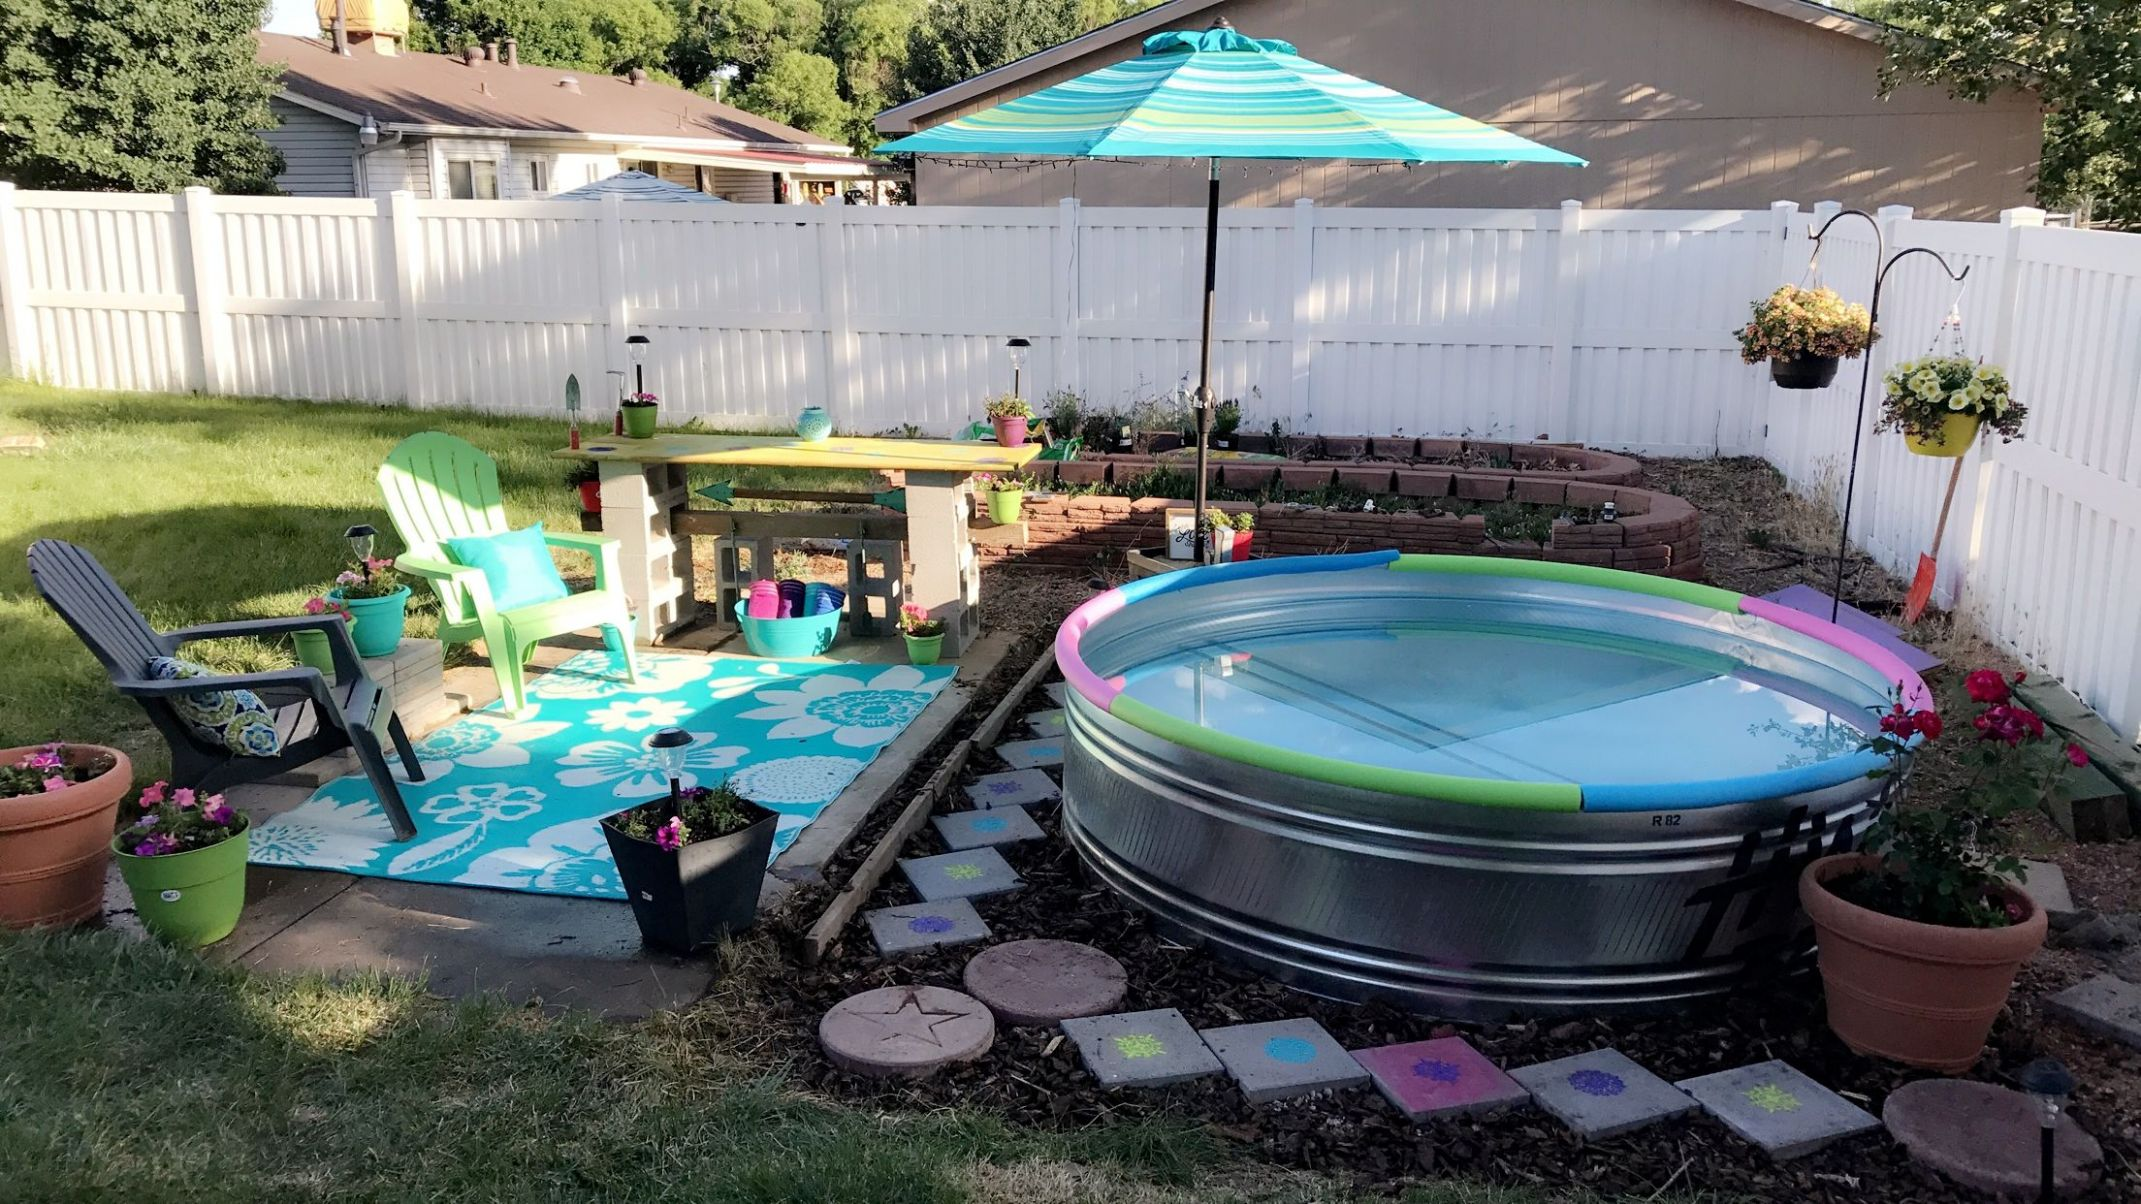 My own backyard dream thanks to Pinterest stock tank pool ...